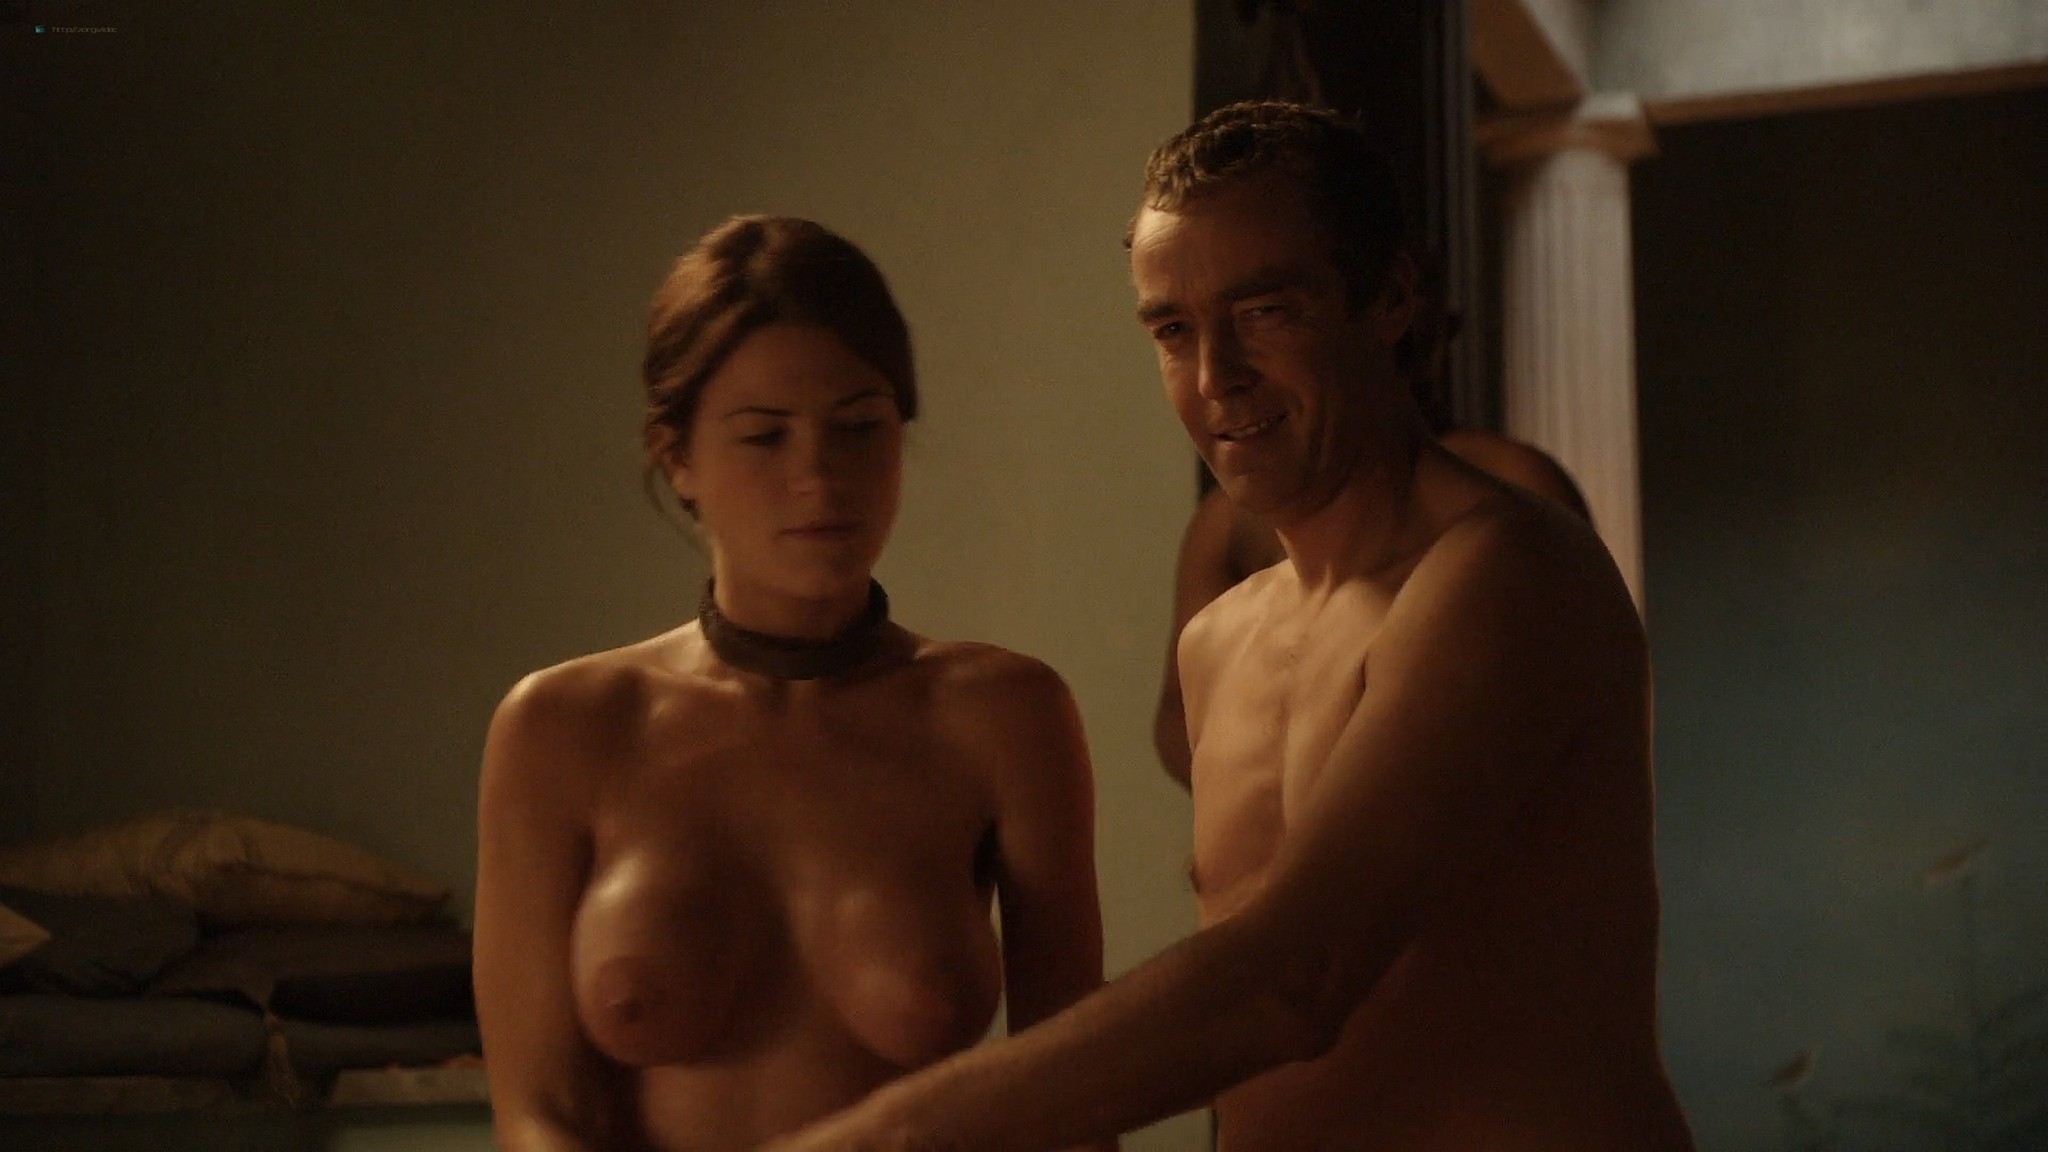 Lucy Lawless nude Lesley-Ann Brandt and other nude sex too - Spartacus (2010) Delicate Things s1e6 HD 1080p BluRay (13)